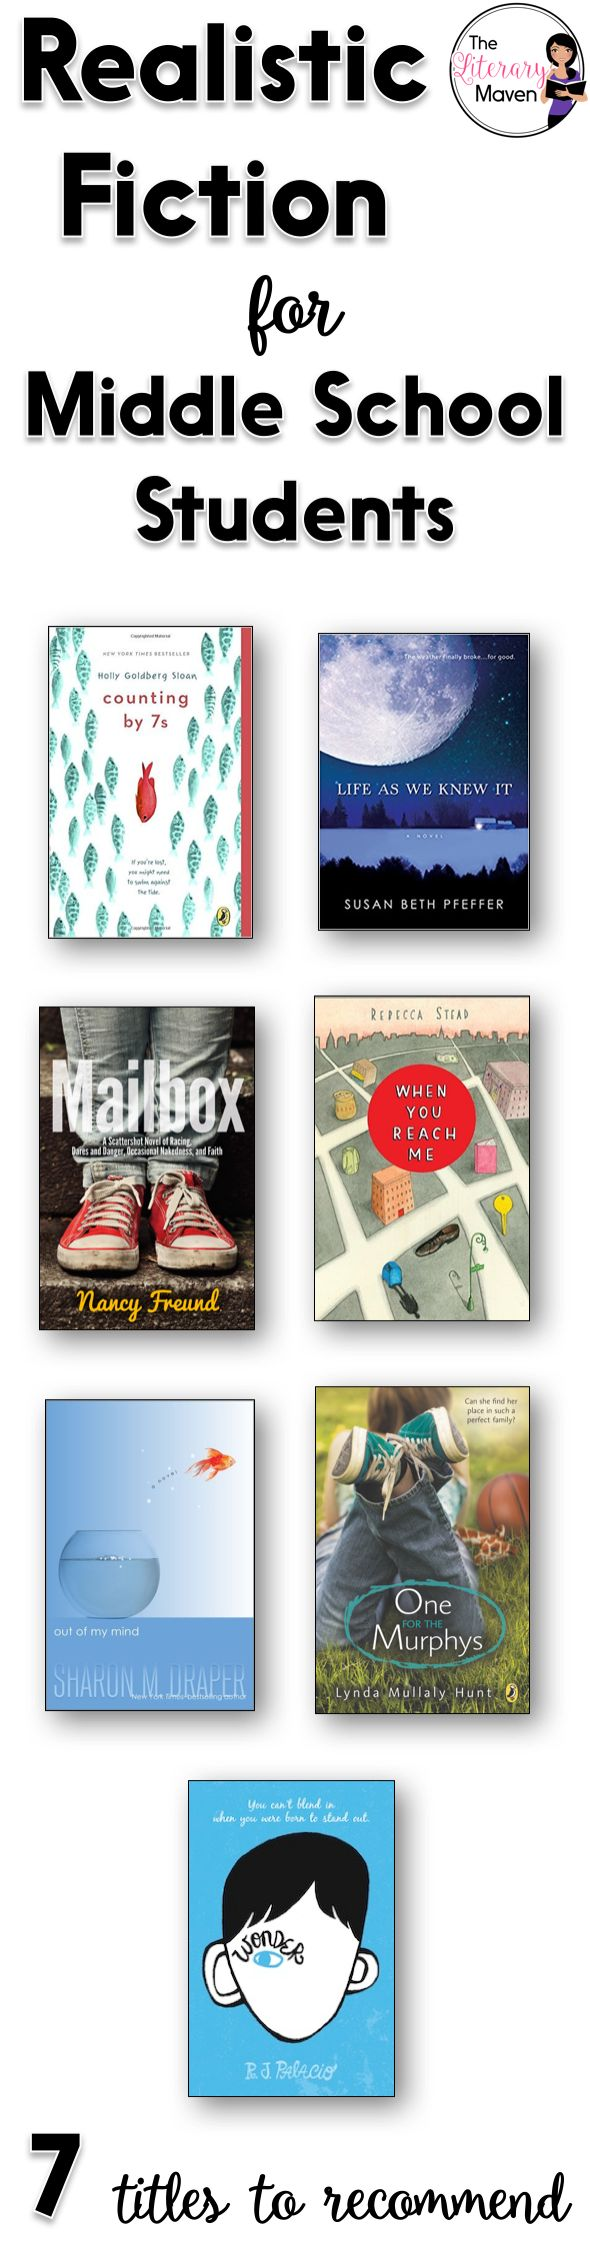 Teachers' lives are hectic, and though many of us love to read, we don't always have the time to do it, which can make it tough to make recommendations to students or to select titles for our classroom library. Here's 7 realistic fiction titles that I've recently read and would recommend to middle school students.